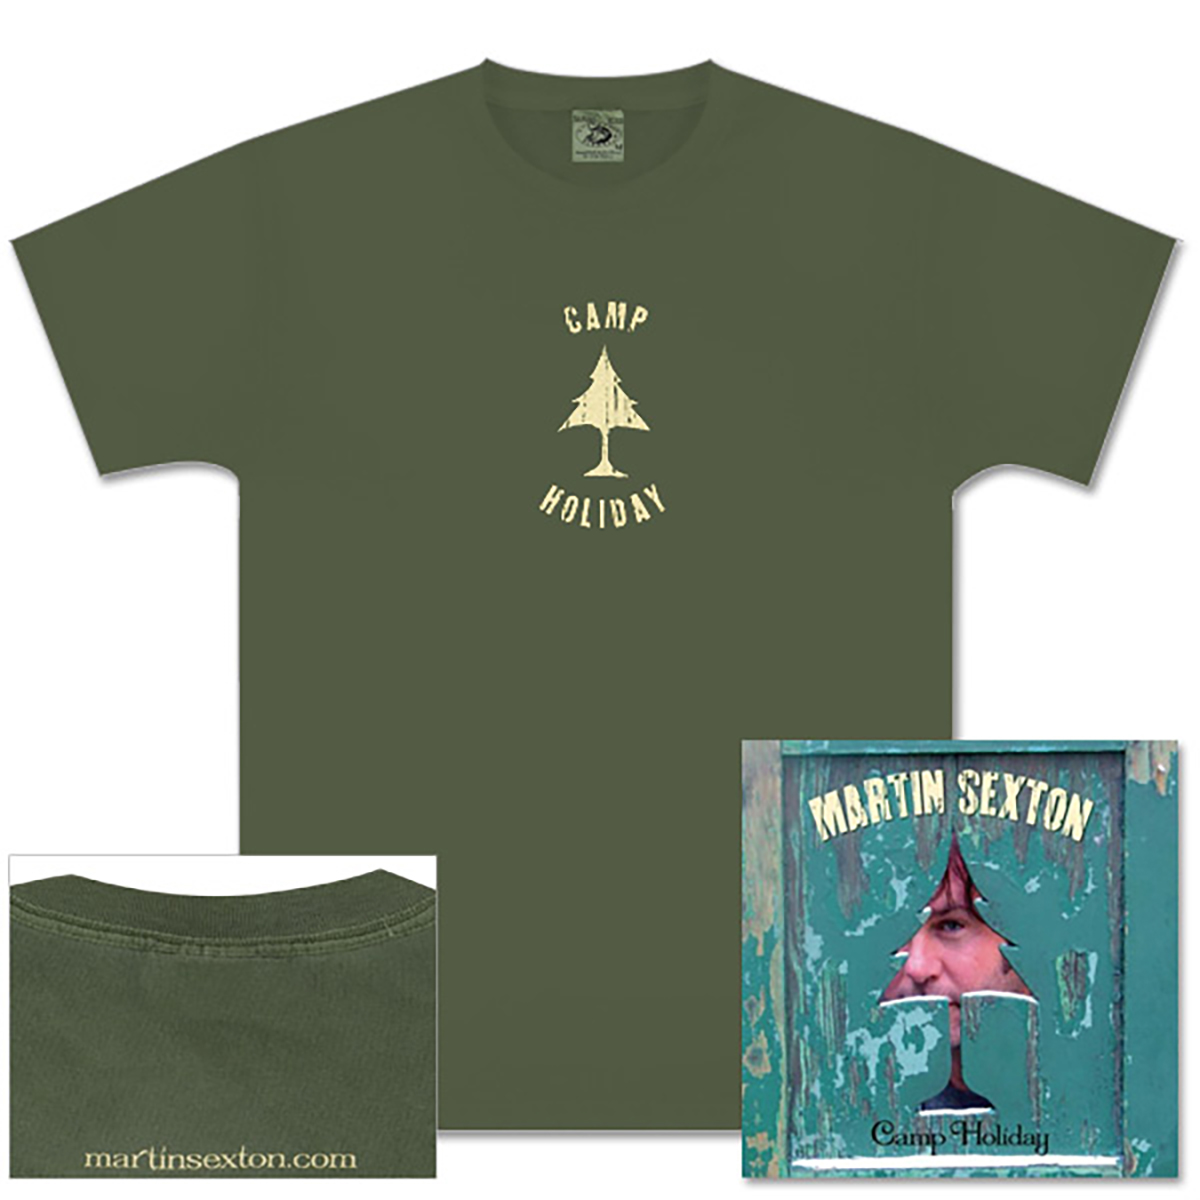 Camp Holiday CD/Tee Bundle